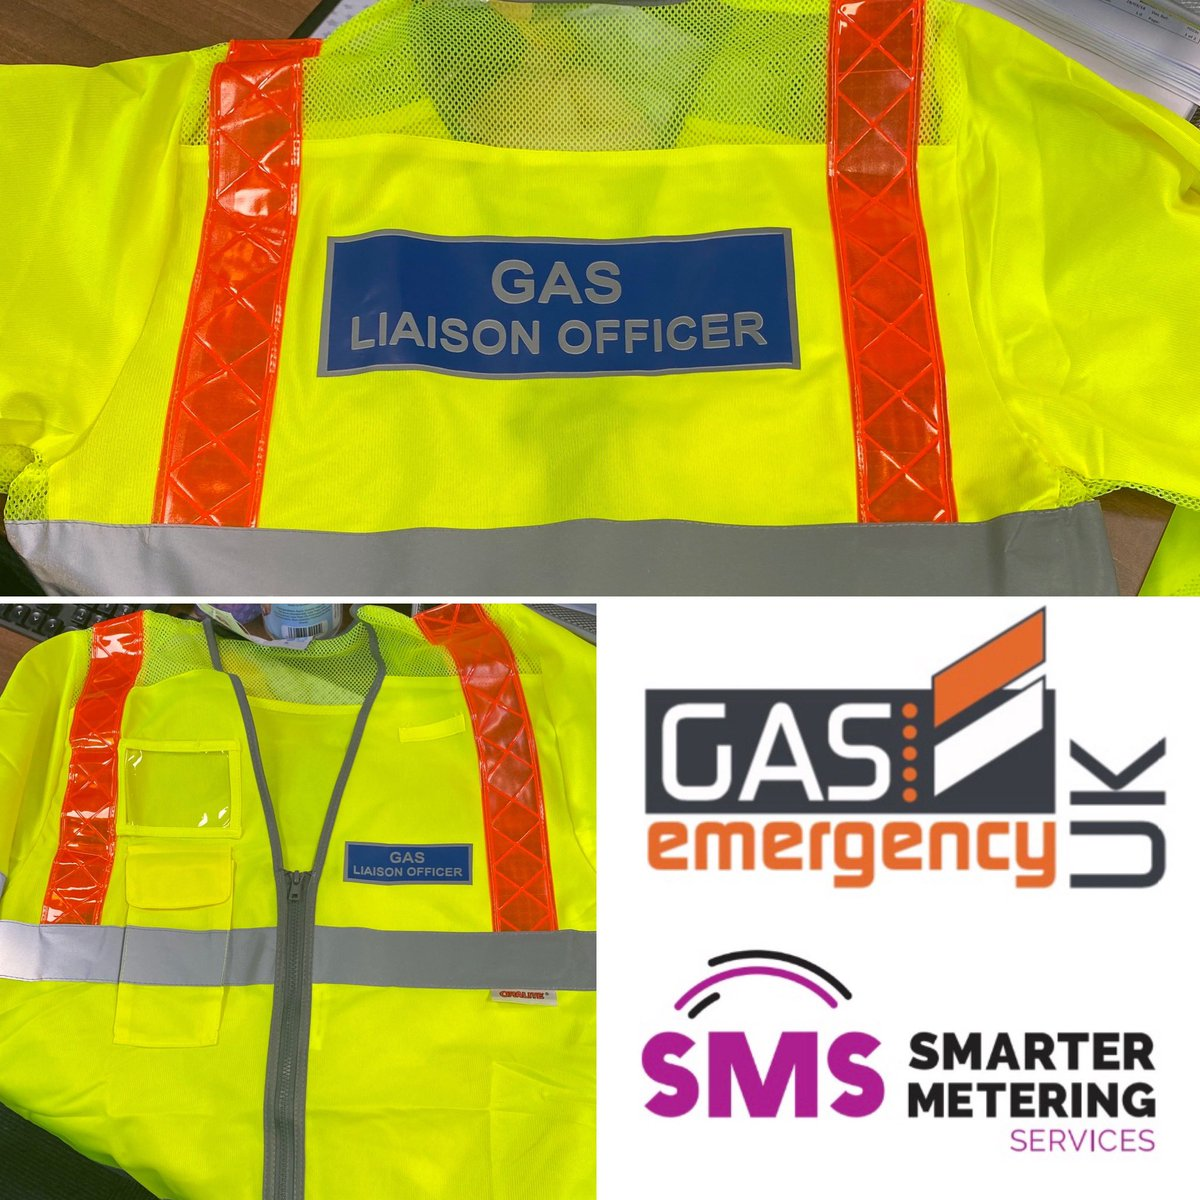 It's important we keep our customers consumers updated on any gas outage affecting any number of plots. Our engineers do a great job, that said Our Engagement Officers will now take the lead on customer and consumer questions. #customerfirst